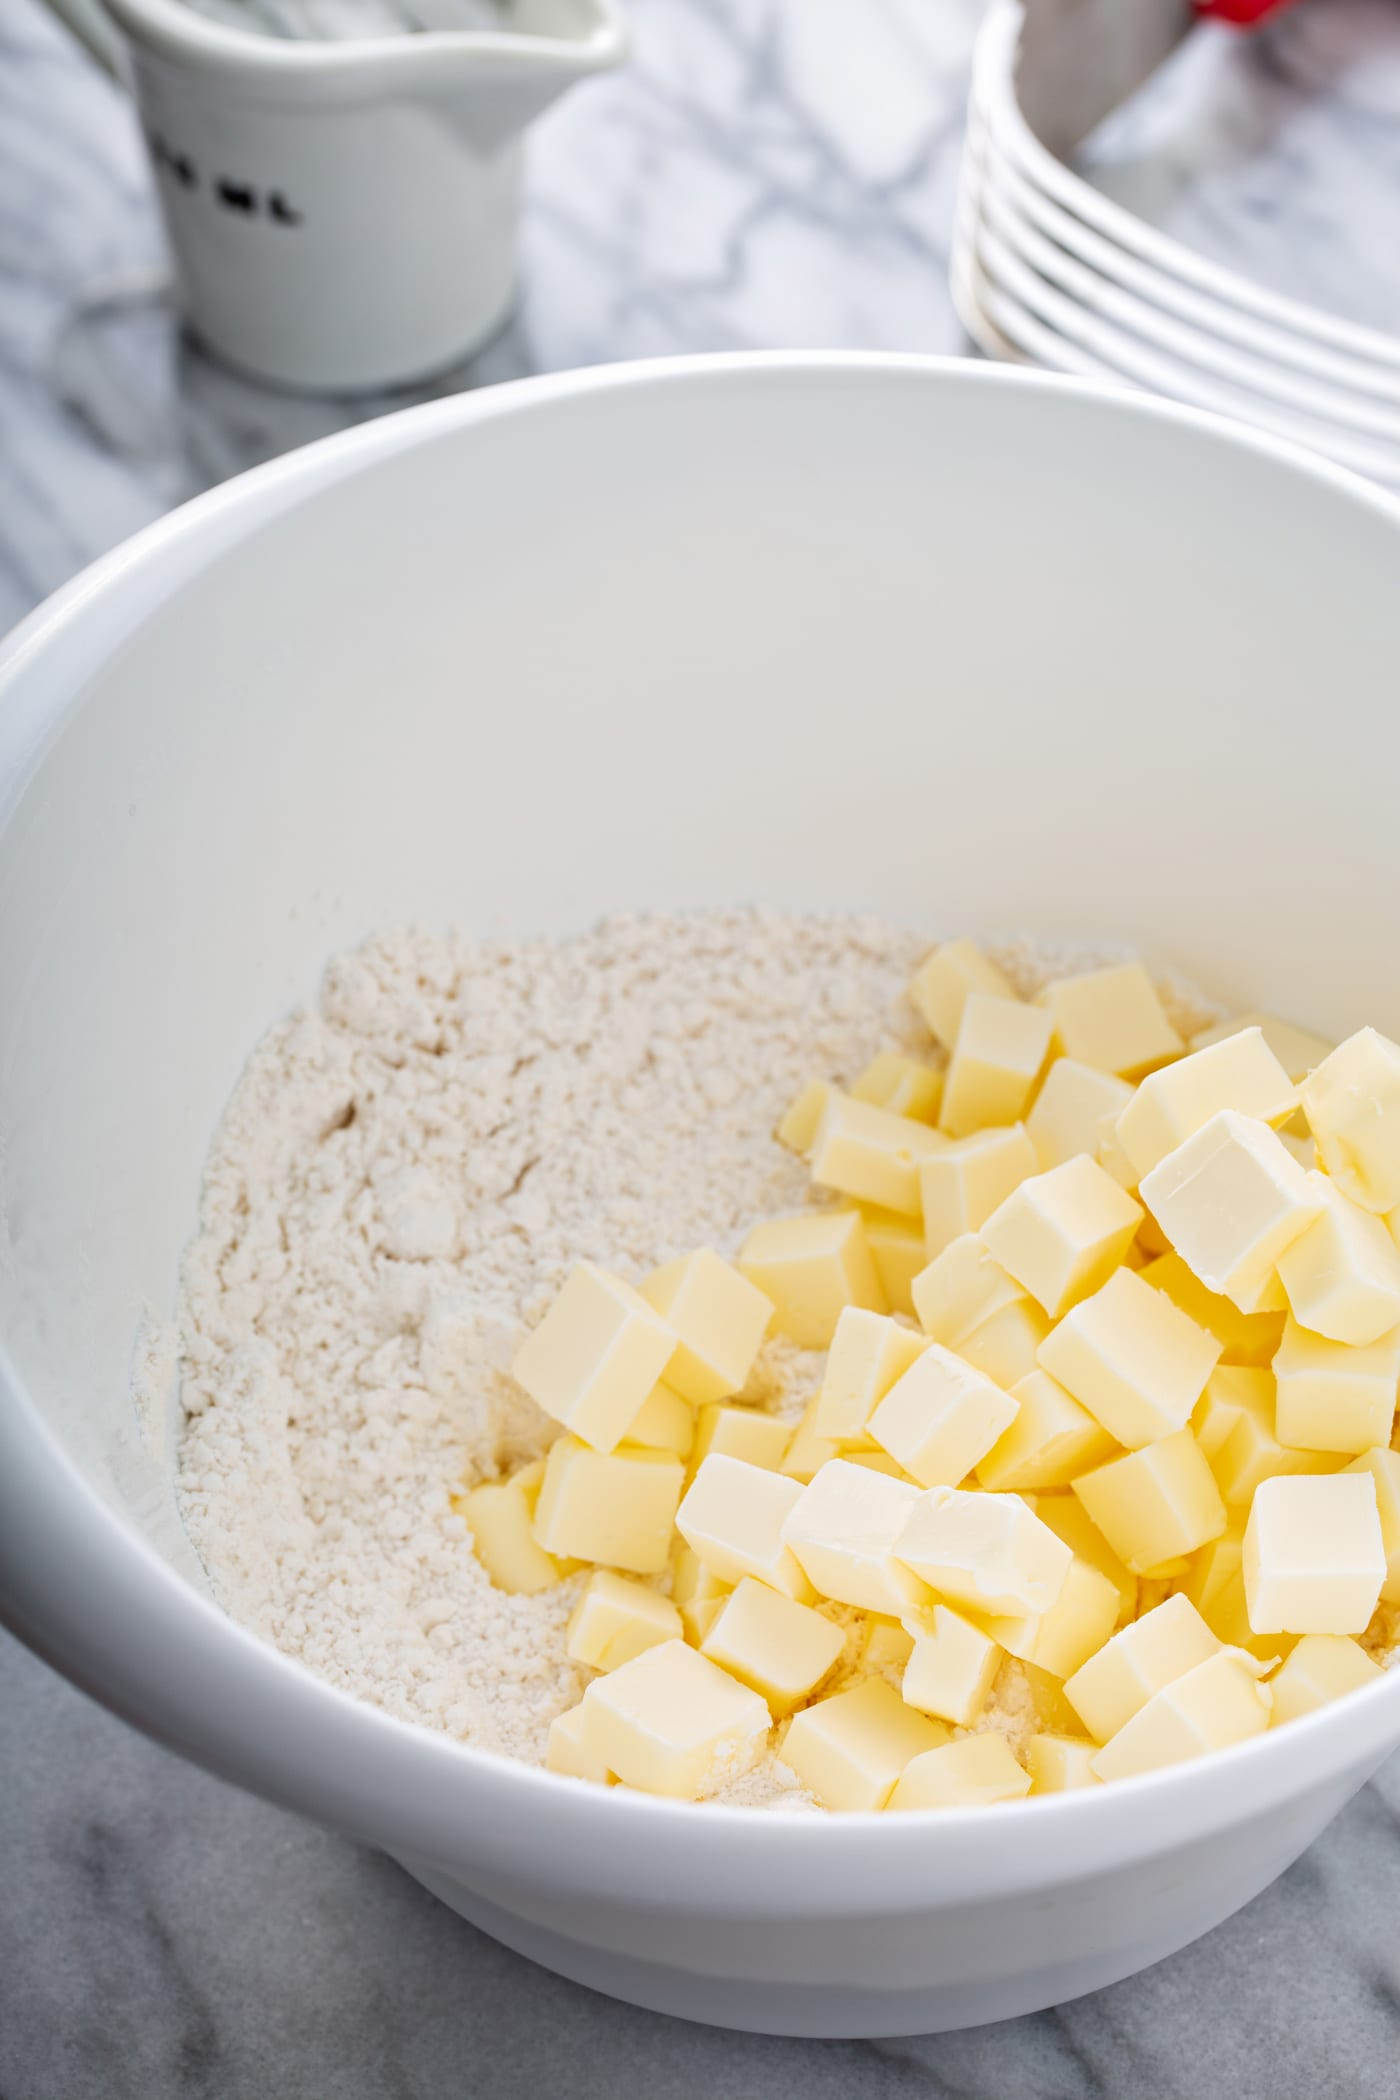 A photo of small cubes of butter piled on top of flour in a white mixing bowl.